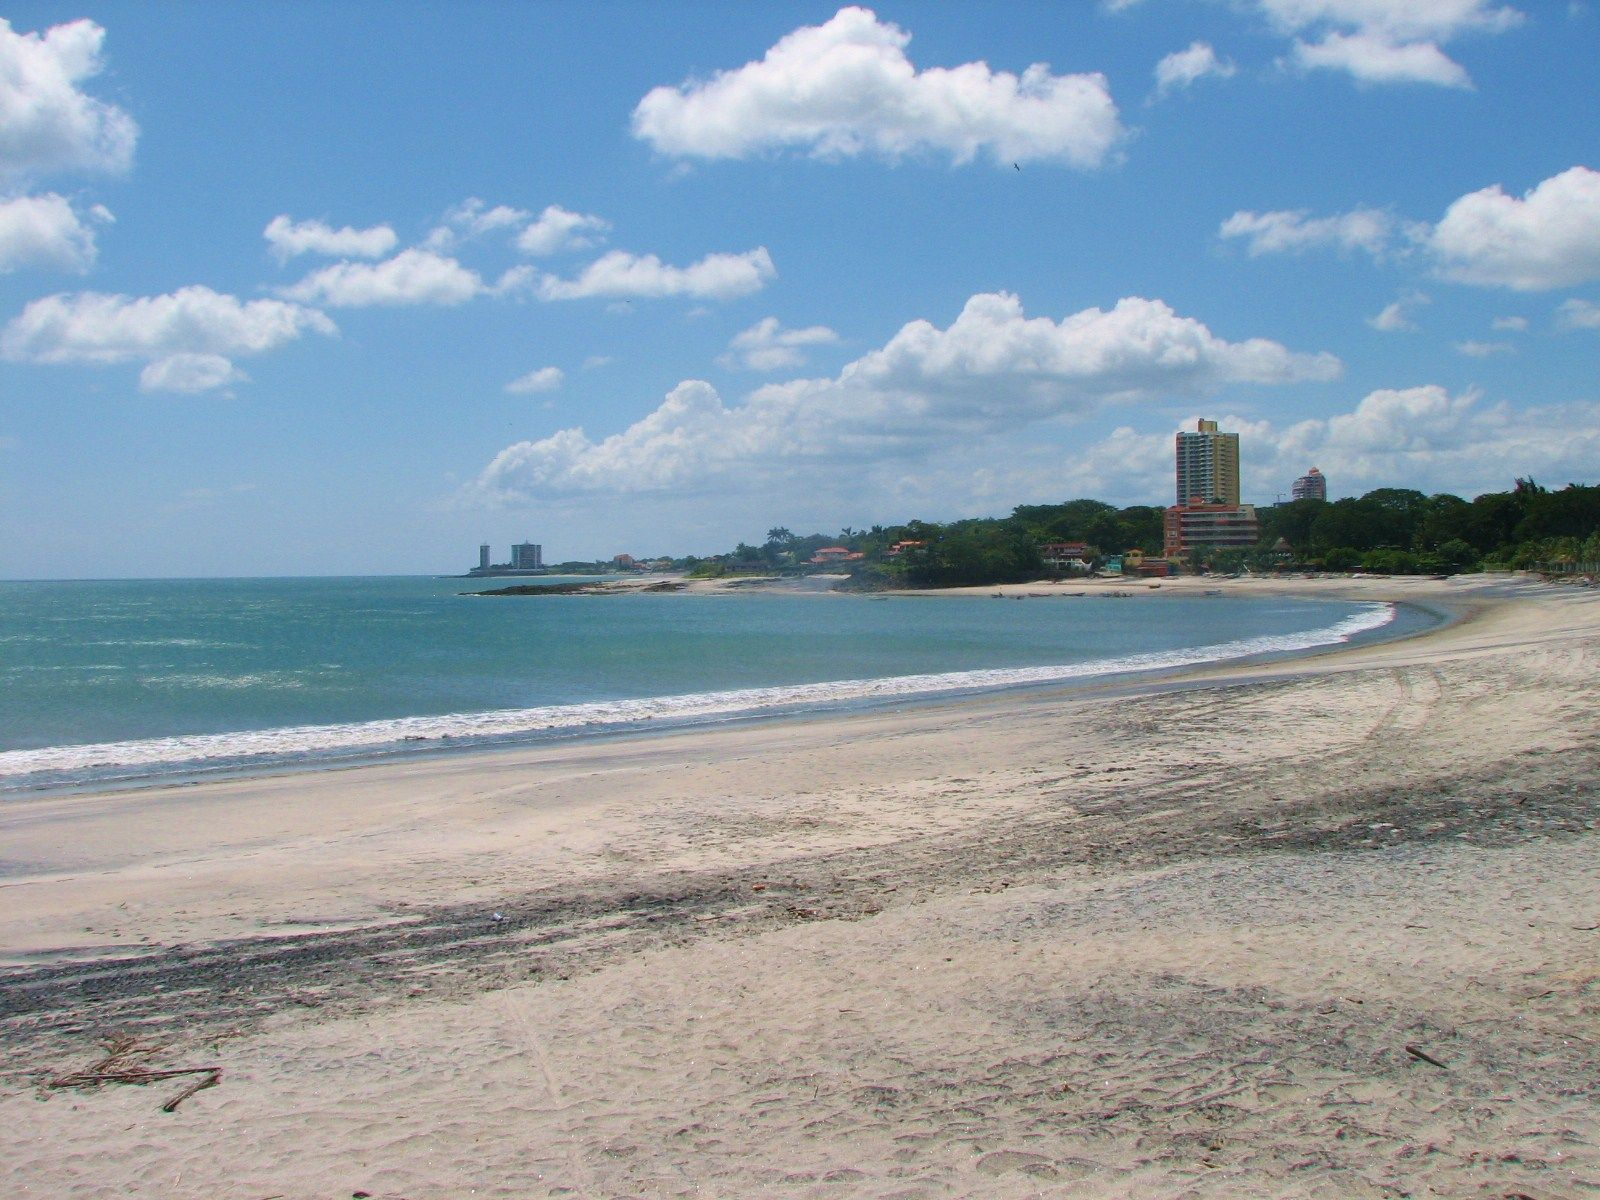 Hernias Playa Gorgona Beach Panama Photo By Lisa Ruizo